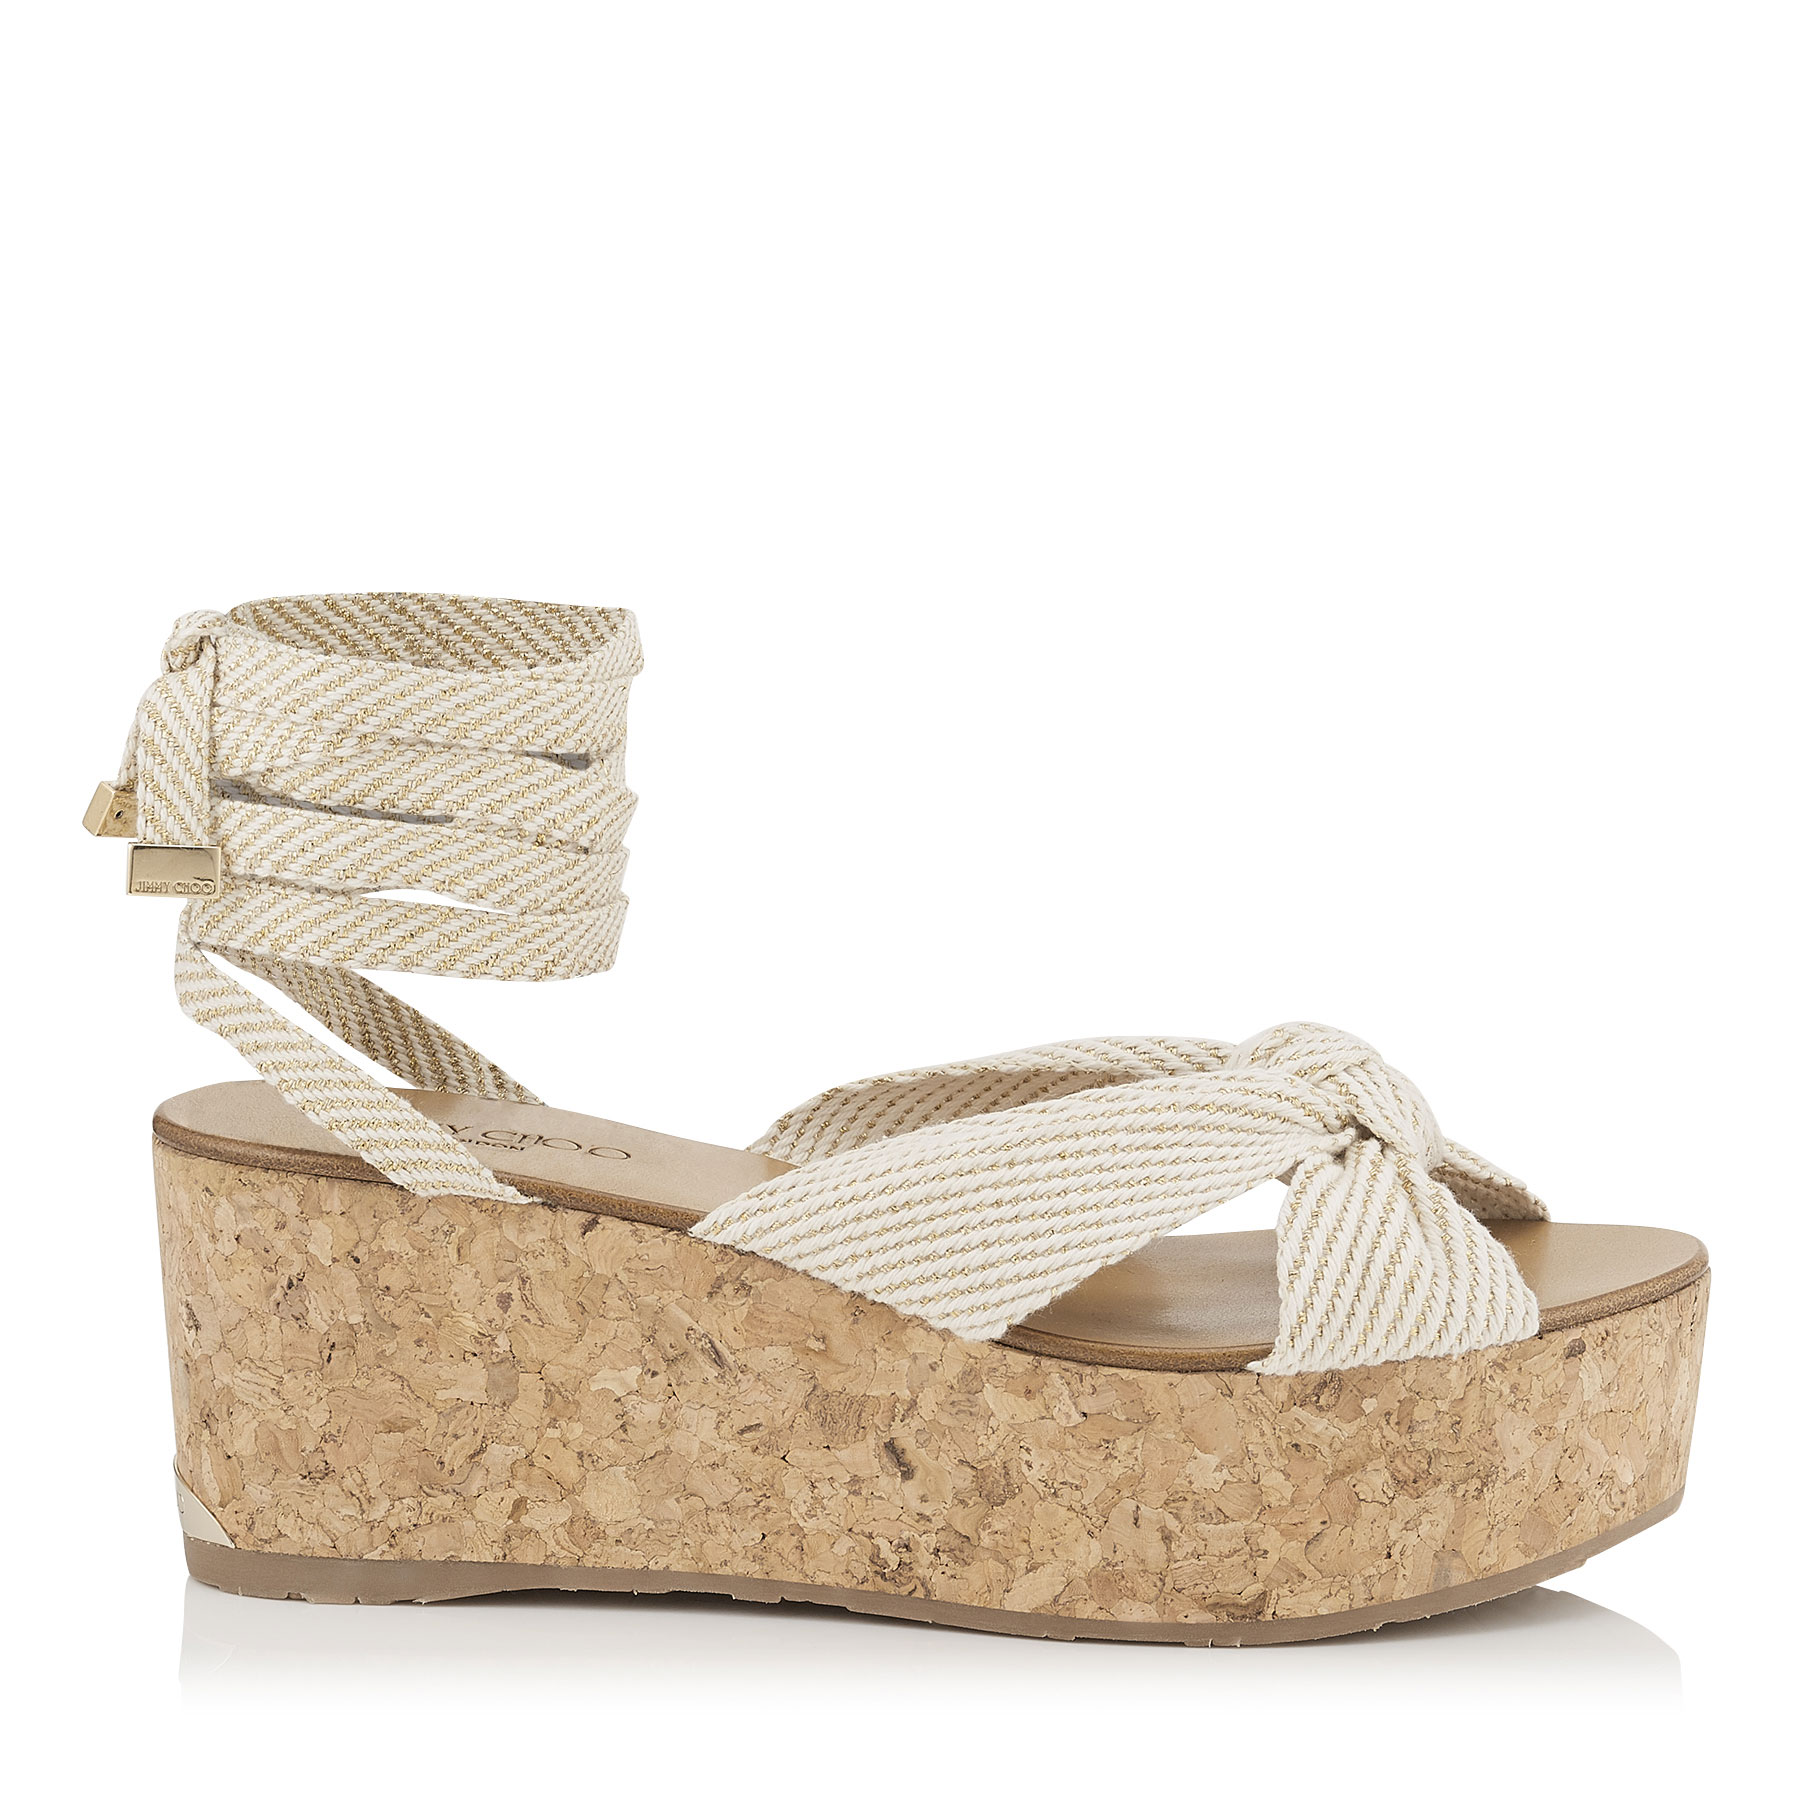 NORAH 70 Natural Gold Cotton and Lurex Wedge Sandals by Jimmy Choo